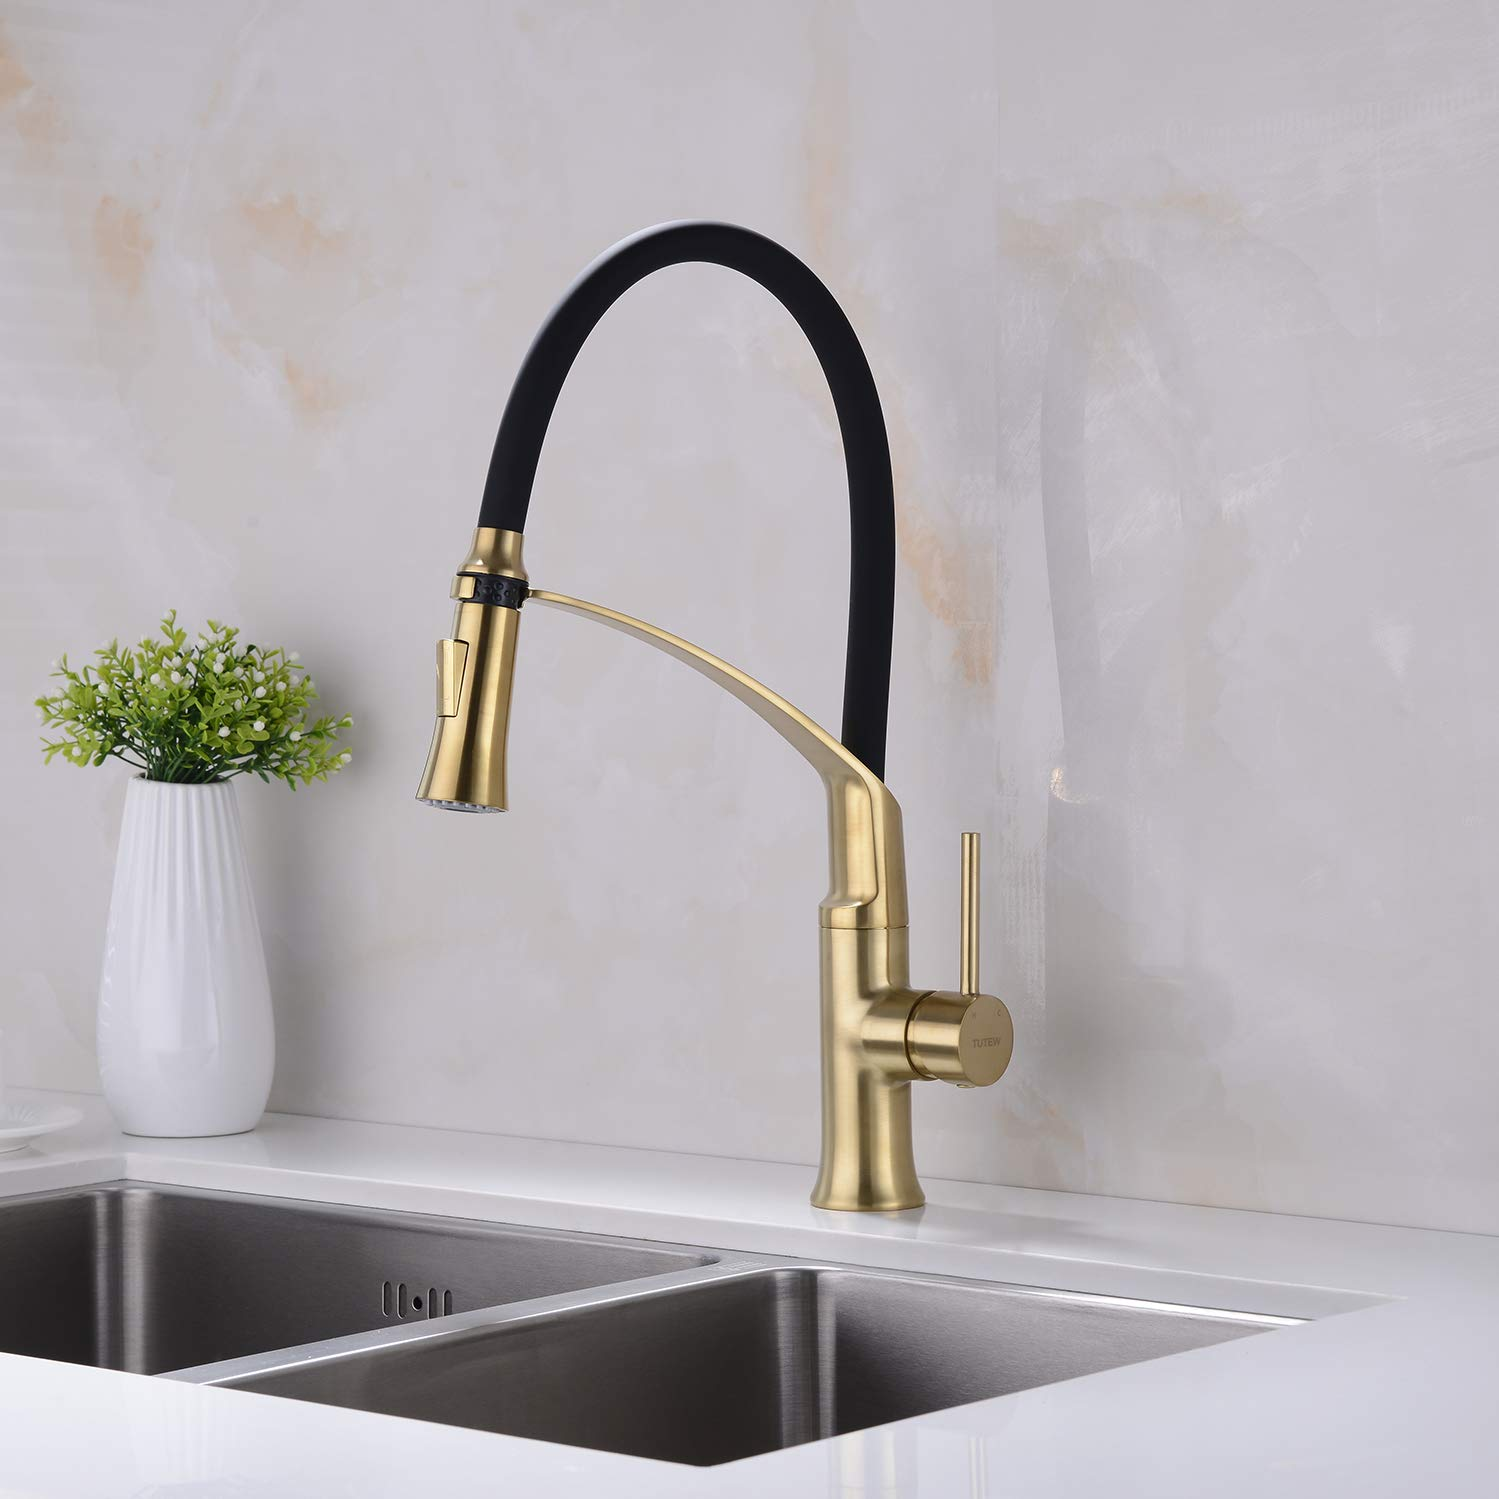 Avola Kitchen Faucet Pull Out Single Handle Sprayer Kitchen Sink Faucet Brushed Nickel Kitchen faucets